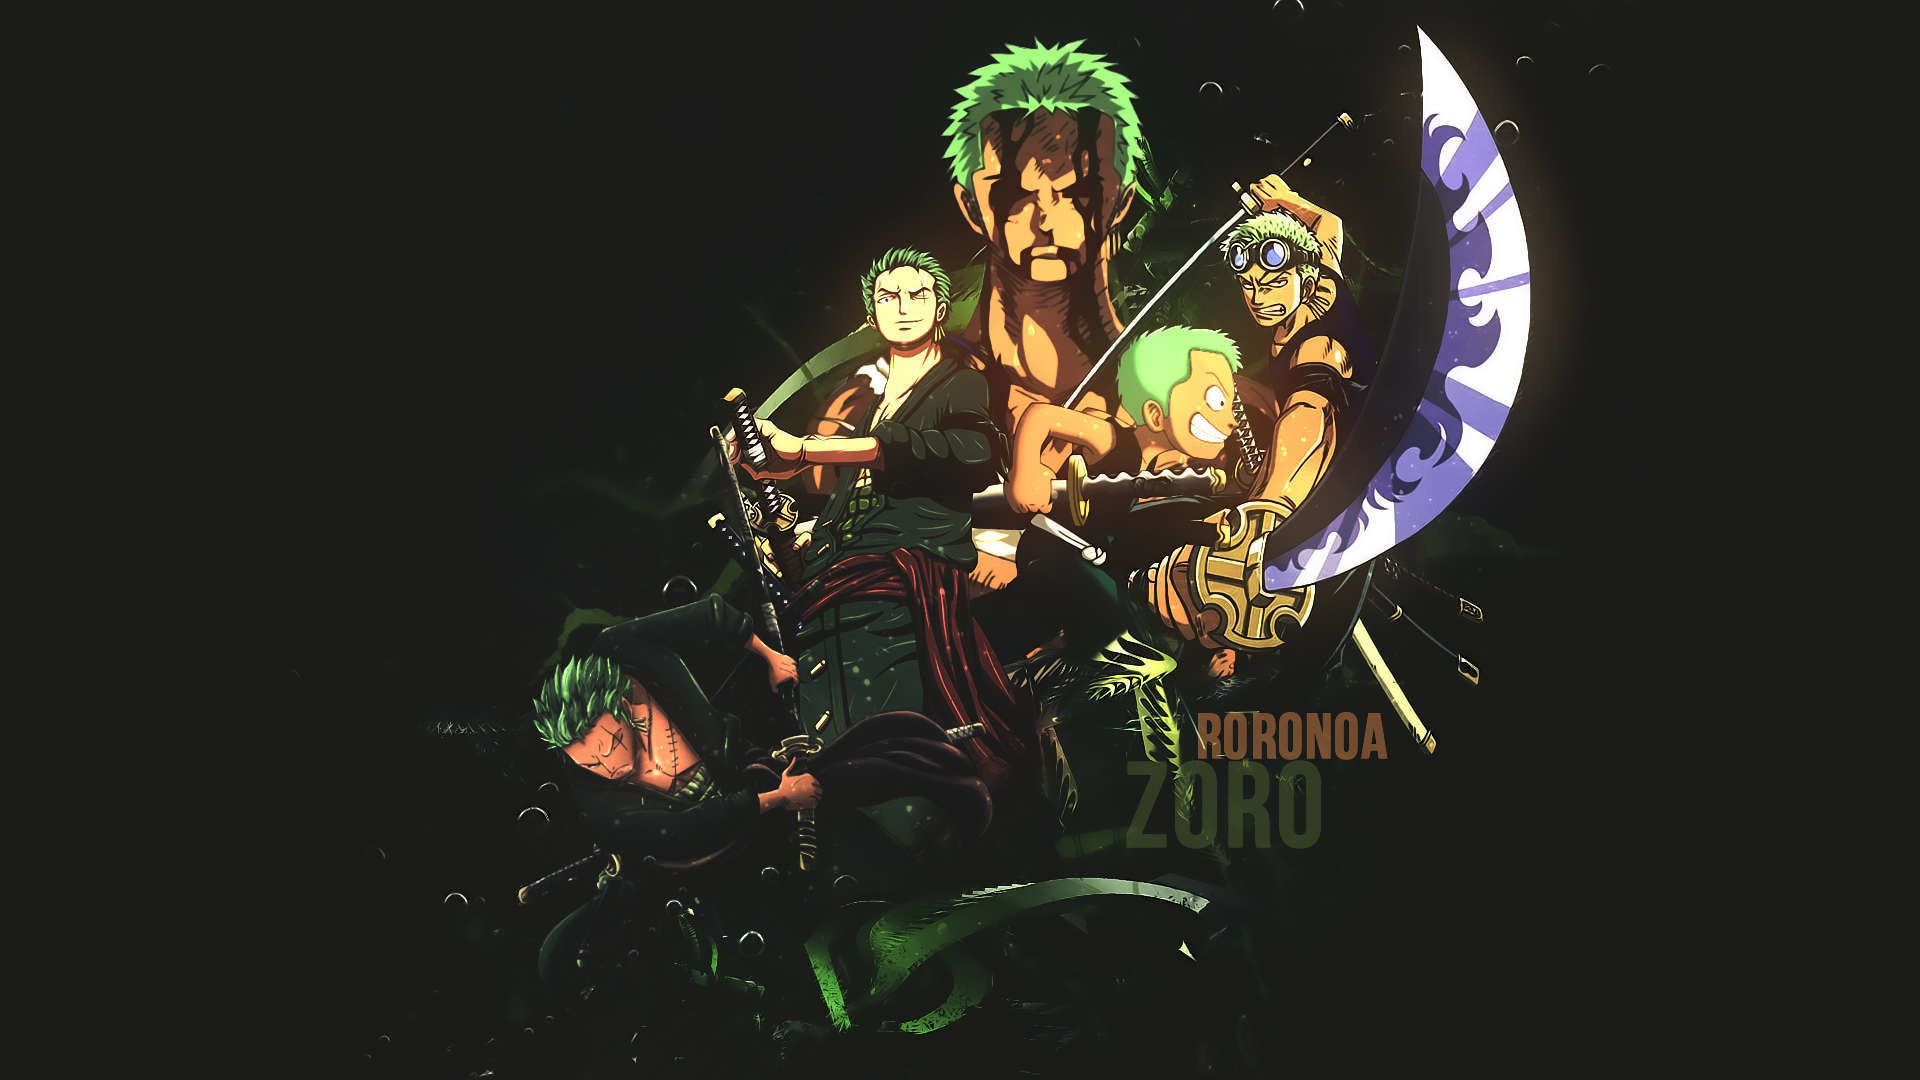 Zoro Wallpaper Hd 64 Images